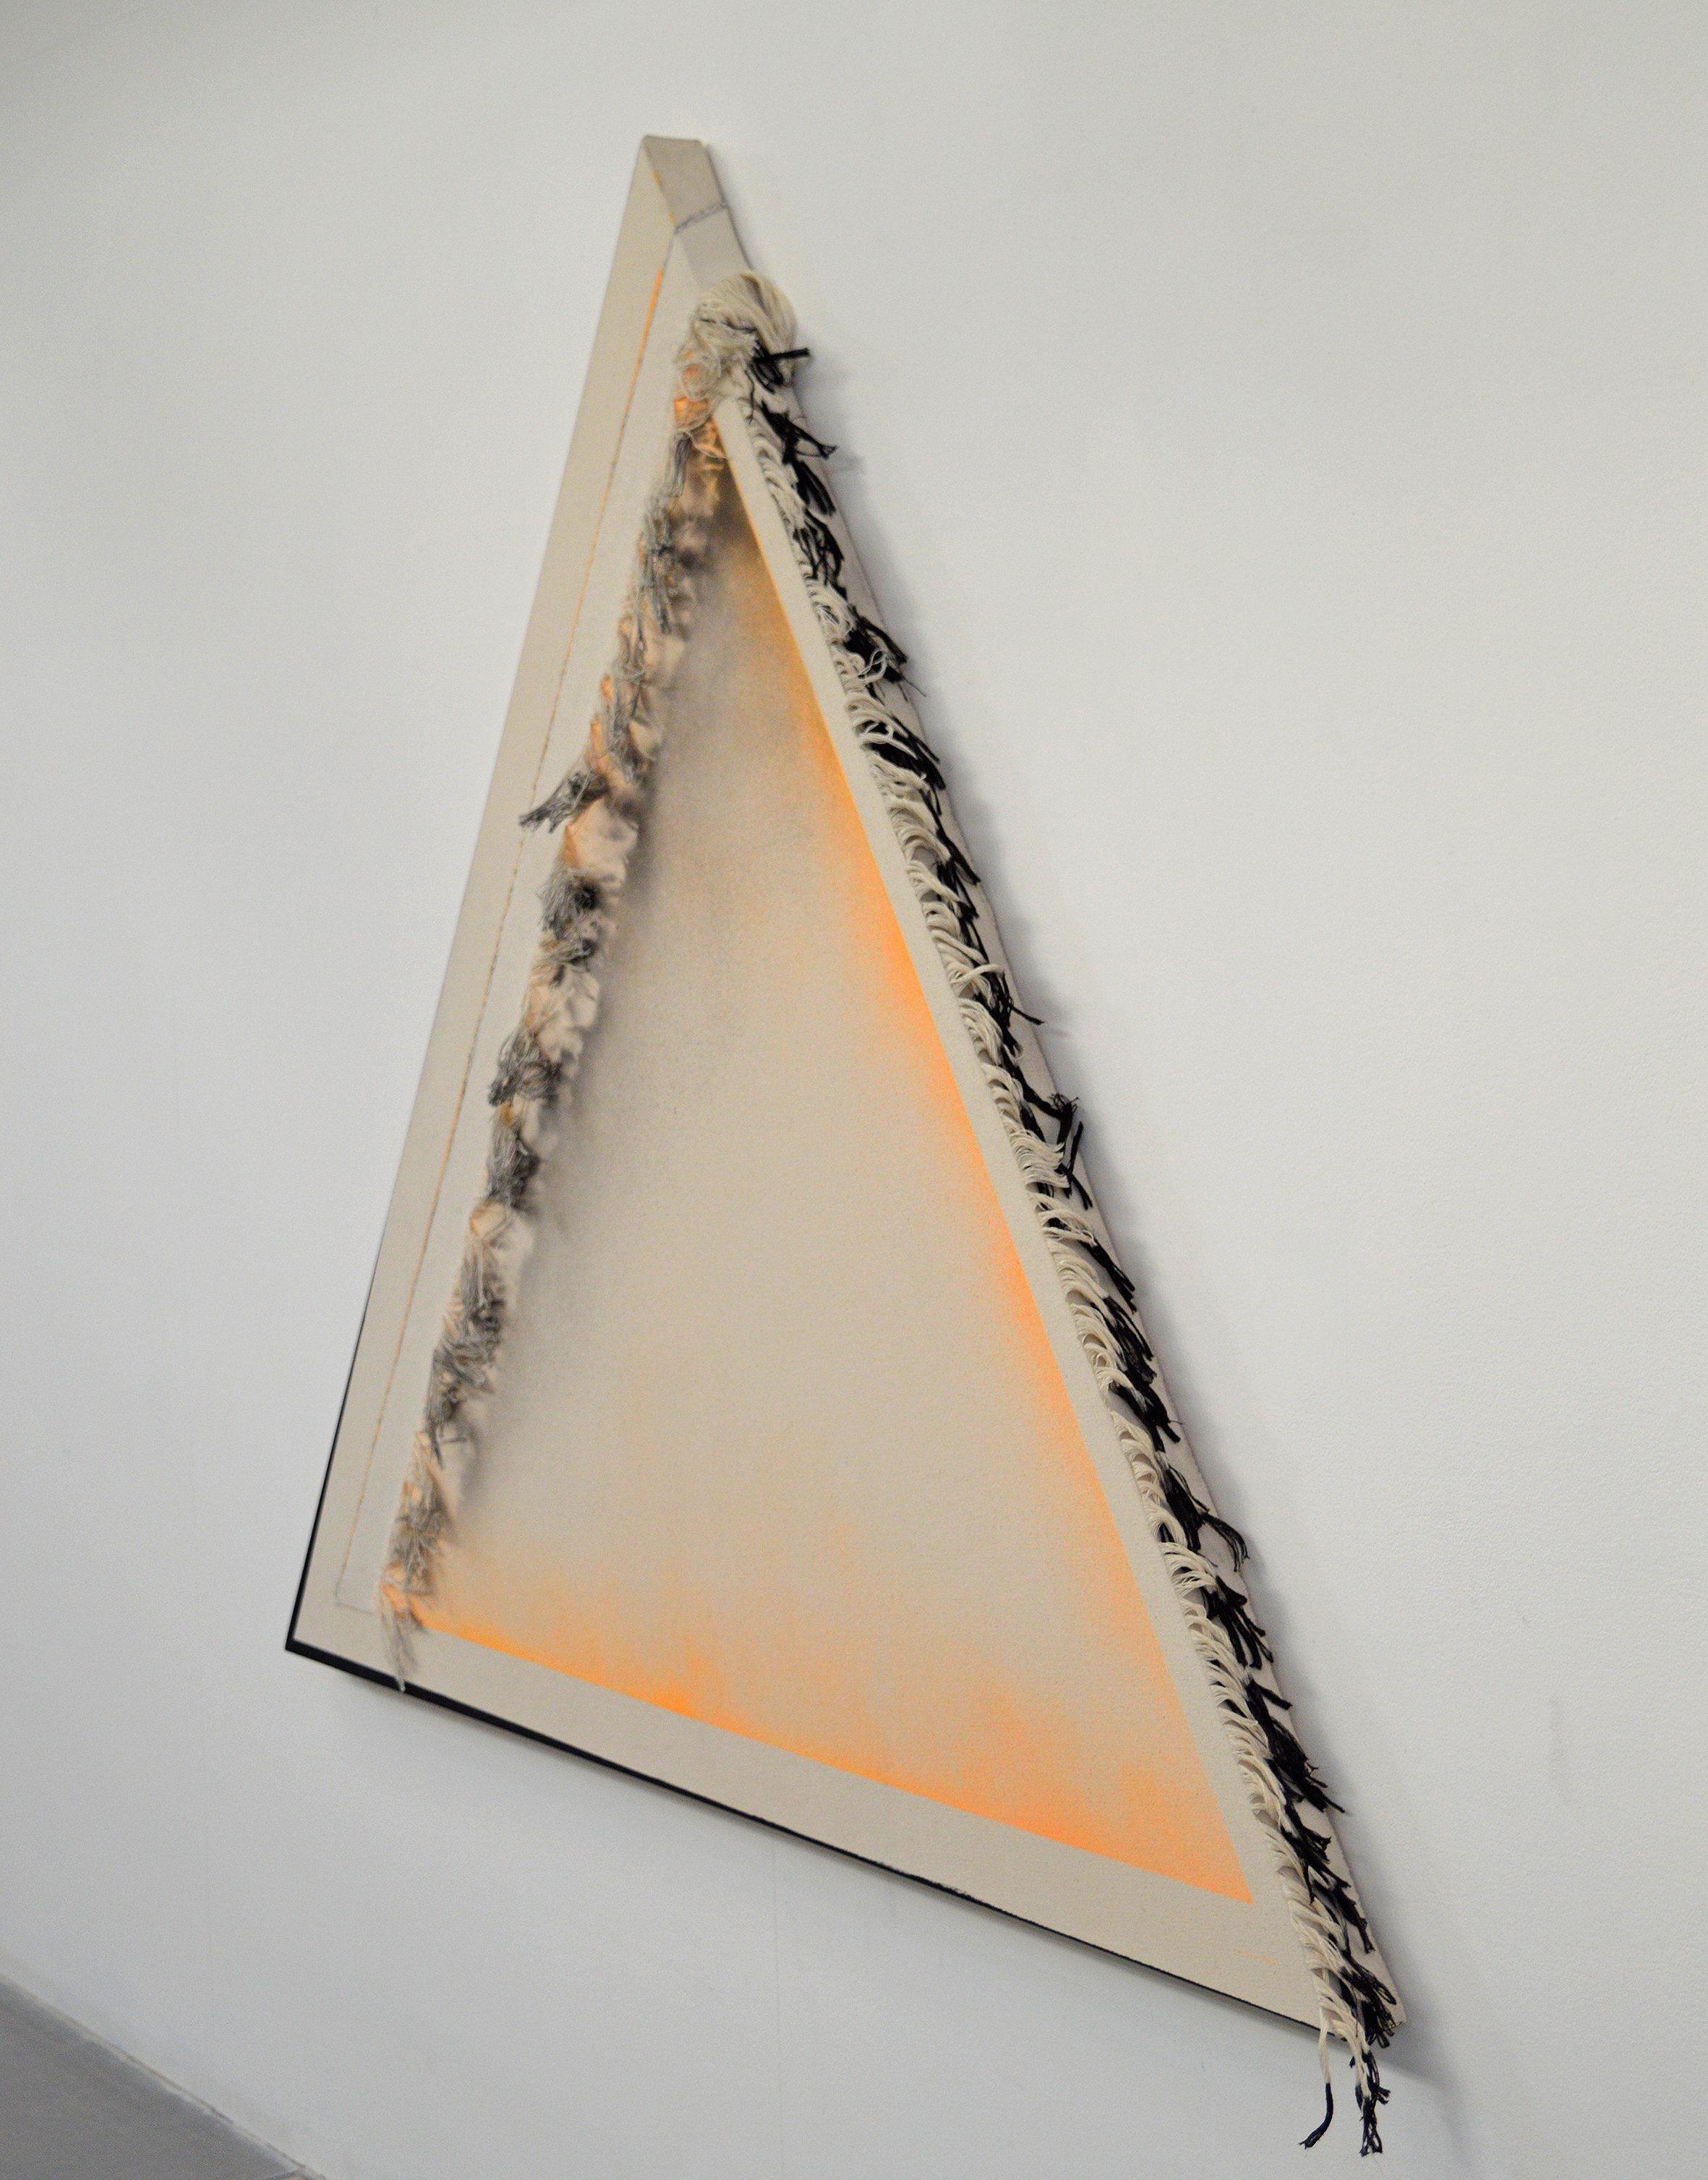 Andrea Medjesi-Jones , Bearded Triangle 1,  2015 Canvas fringing, acrylic and spray paint on canvas. Image courtesy of the artist and Backertrasse 4 Gallery, Vienna.